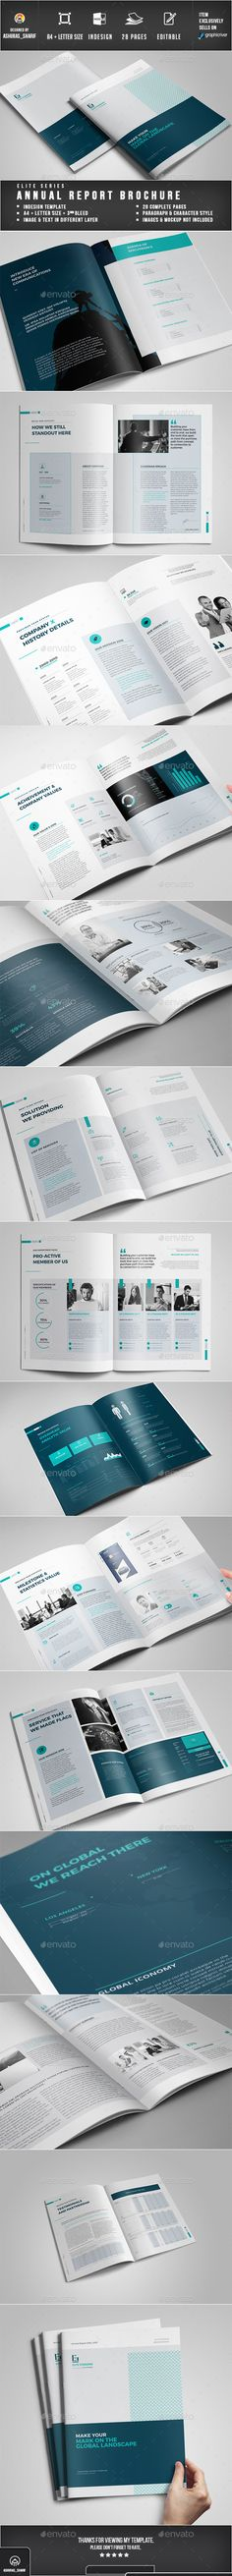 Haweya Annual Report 04 Indesign templates, Annual reports and - company profile sample download